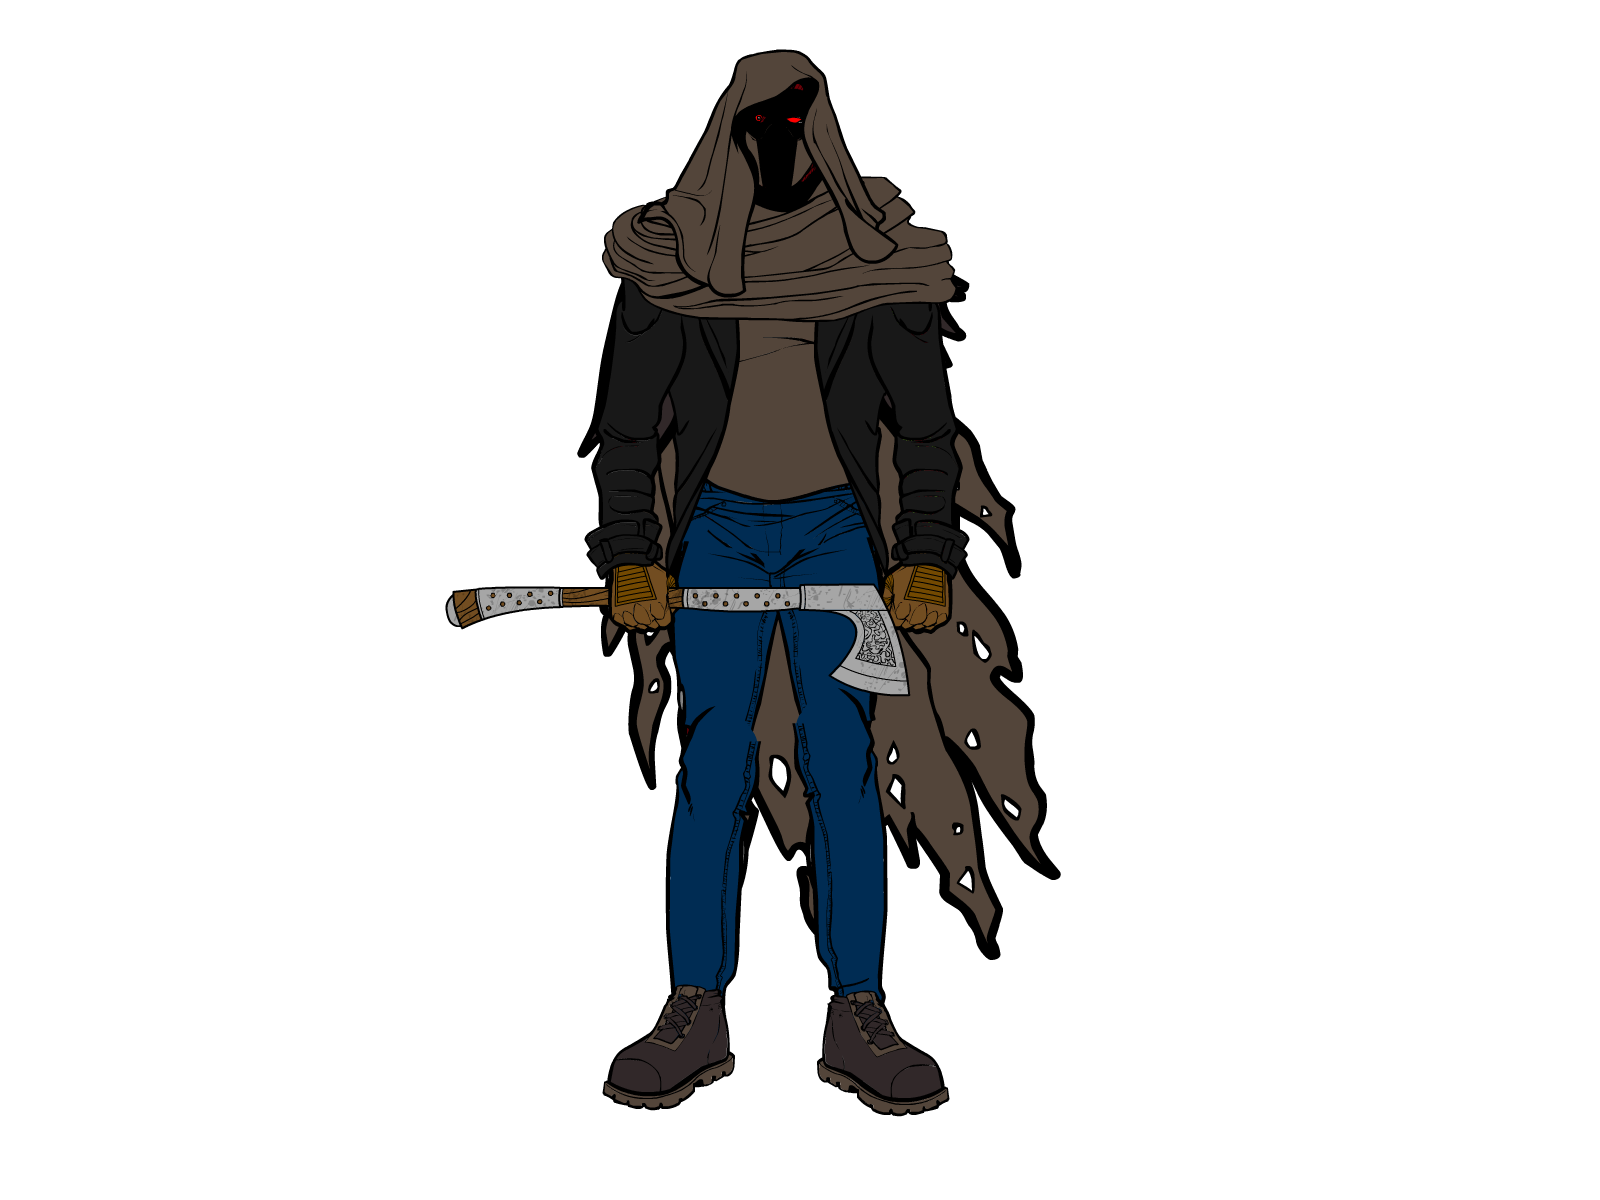 http://www.heromachine.com/wp-content/legacy/forum-image-uploads/nha247/2012/03/Zombie-Fighter.png